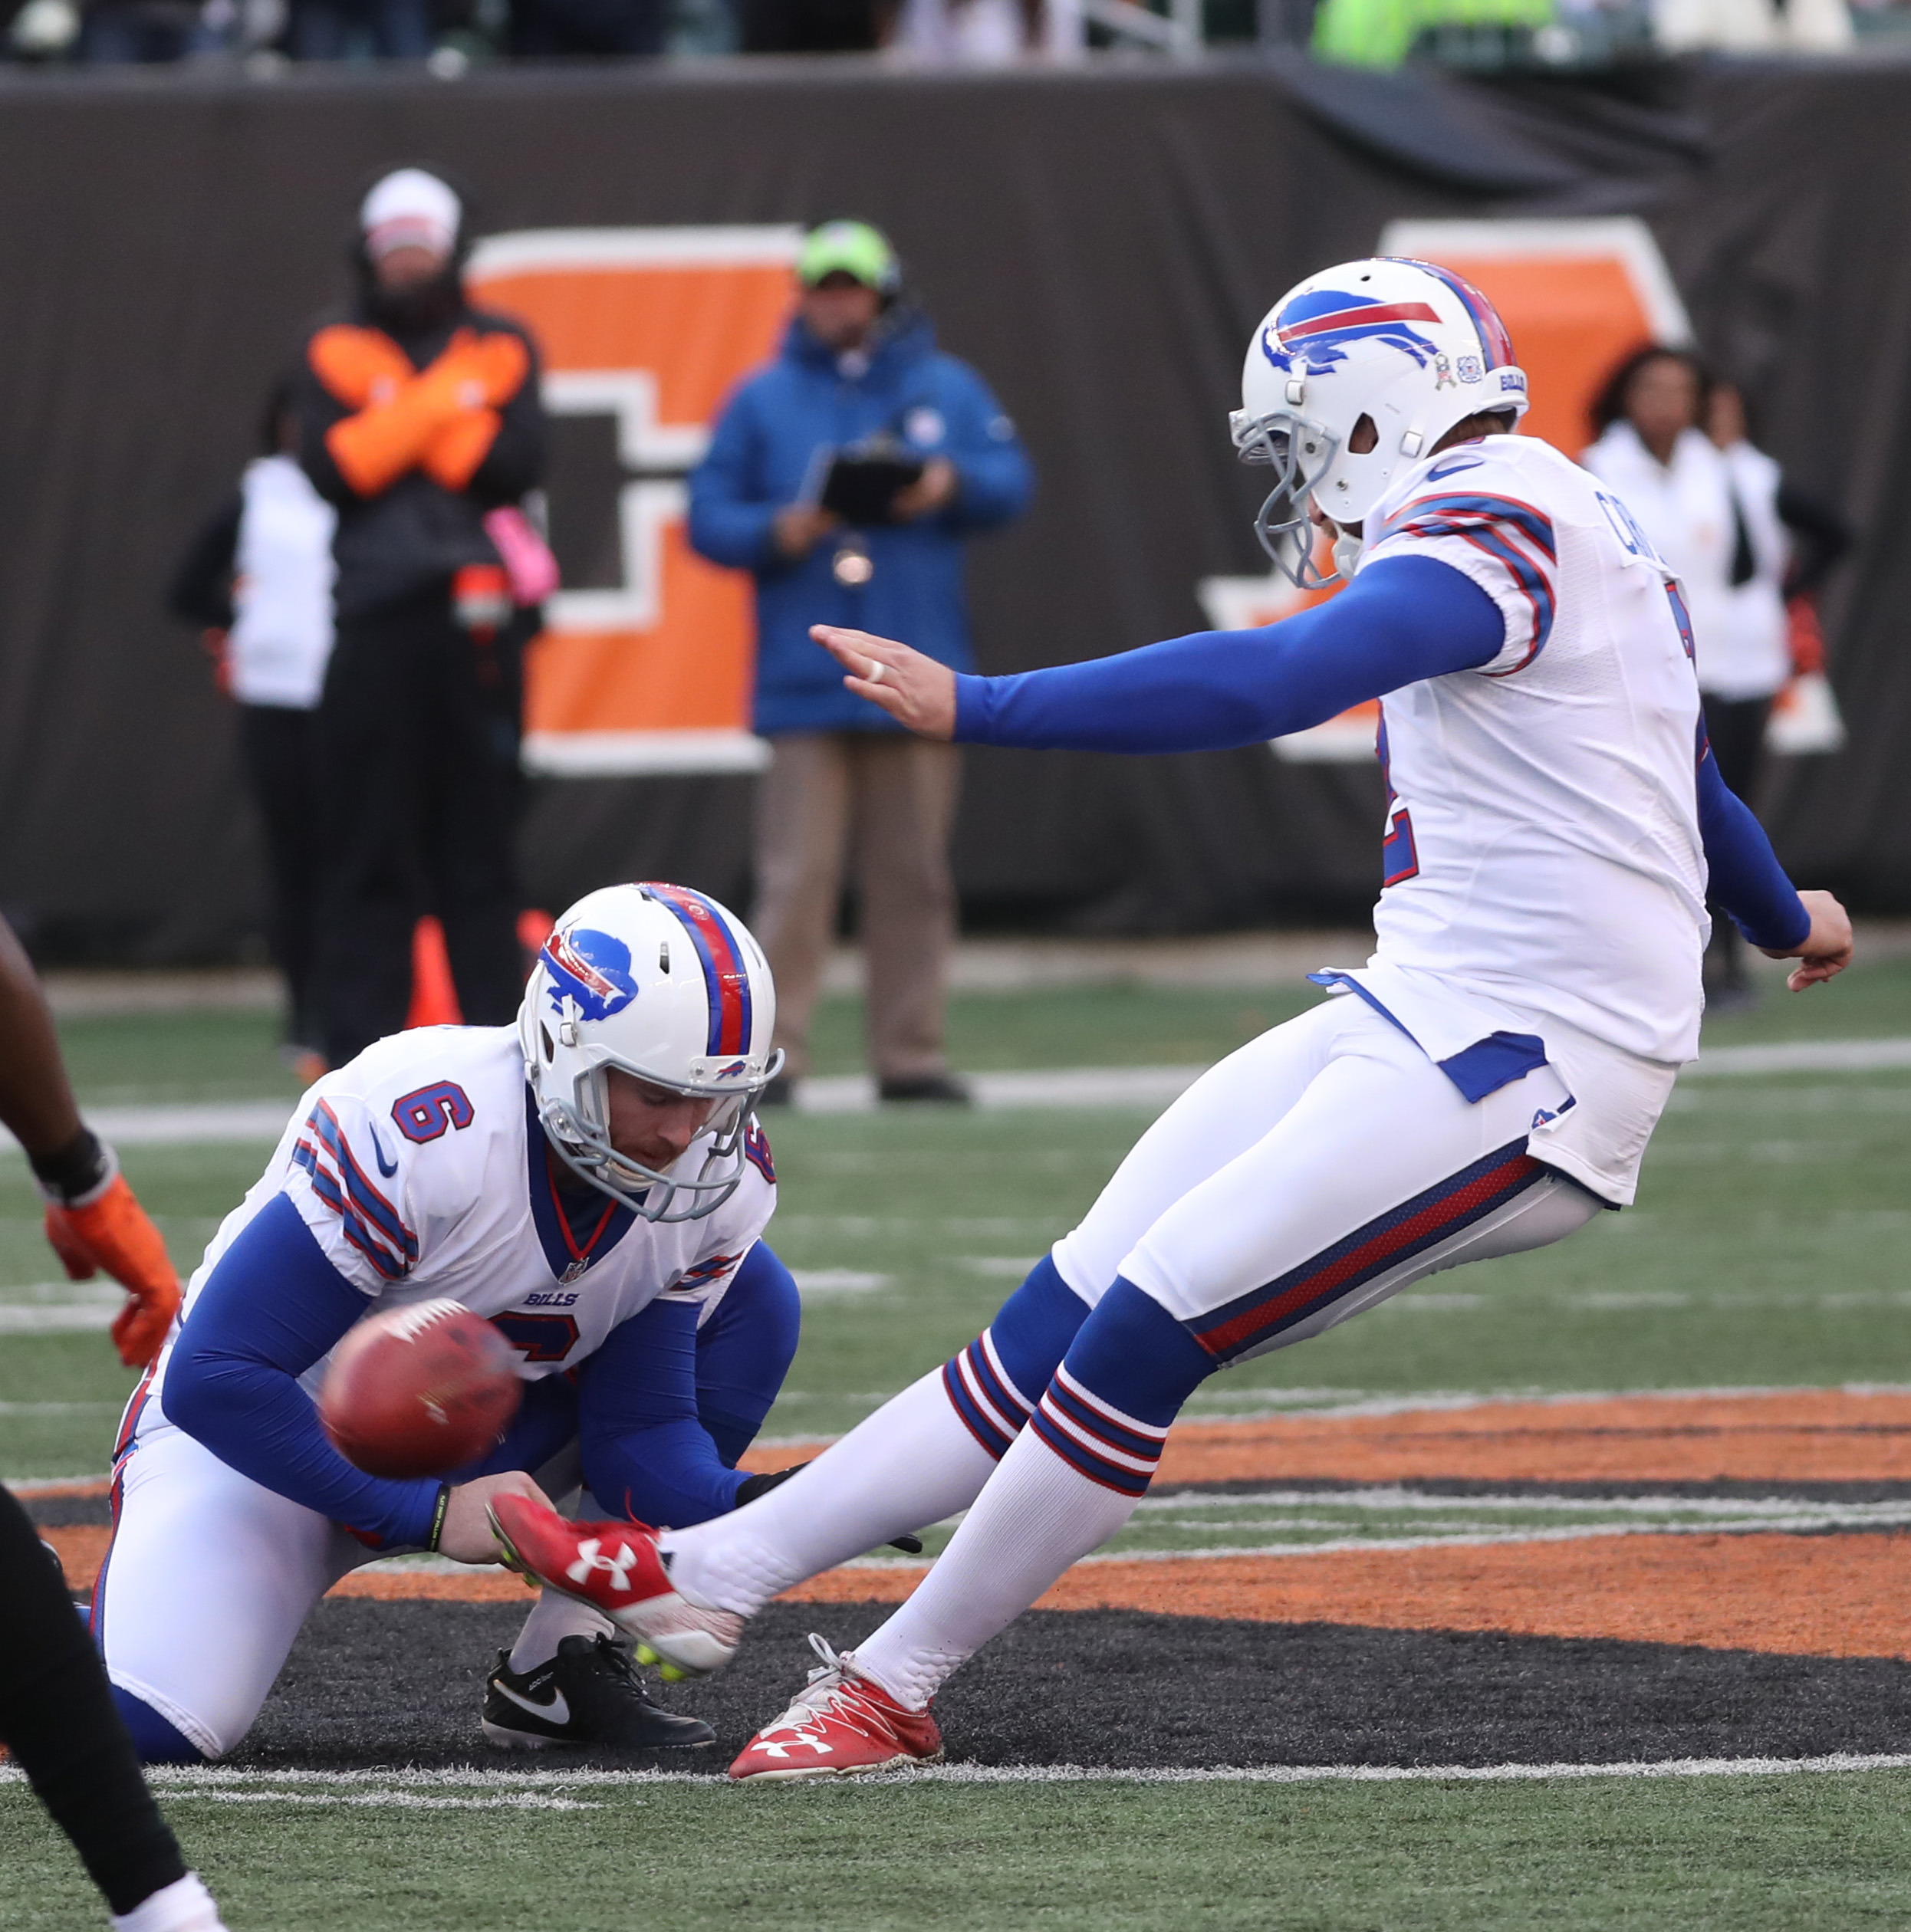 Buffalo Bills kicker Dan Carpenter (2) kicks a 54-yard field goal during the third quarter against the Bengals Sunday.  (James P. McCoy/Buffalo News)